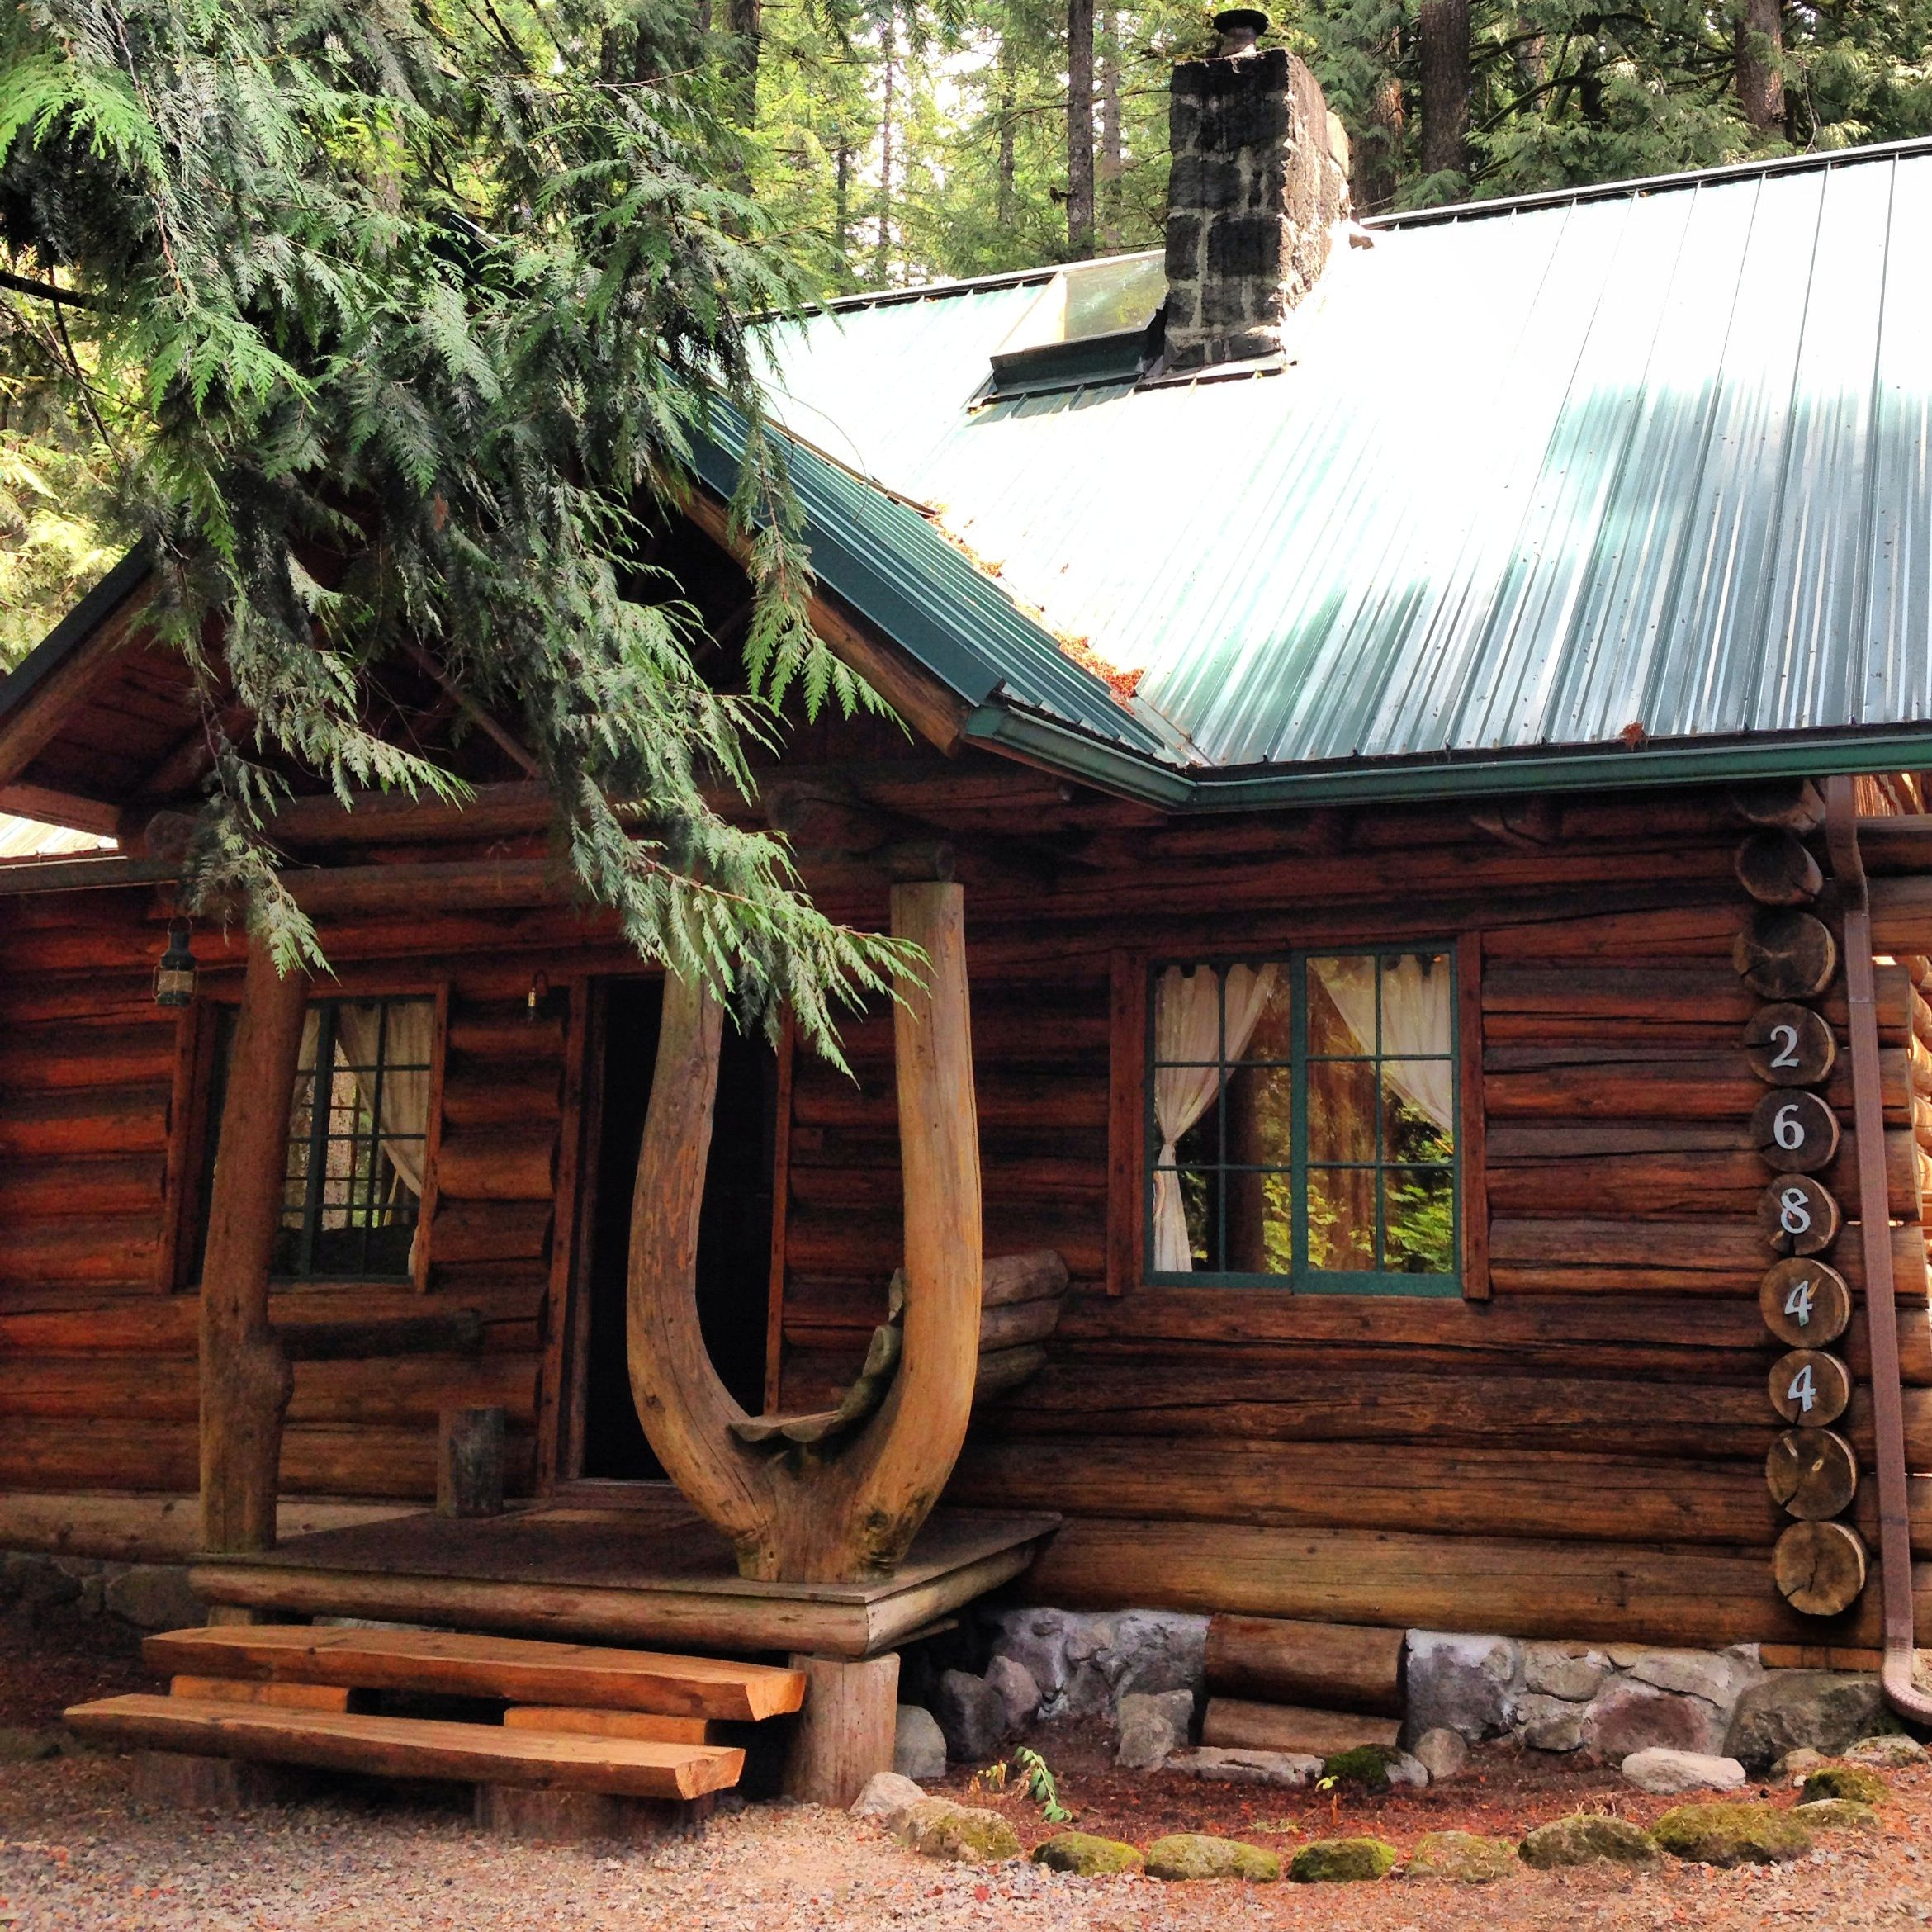 times home montana exterior at part mount travel cozy cabin forest of cabins for seattle rent get rainier log the vacation life deep near mountain